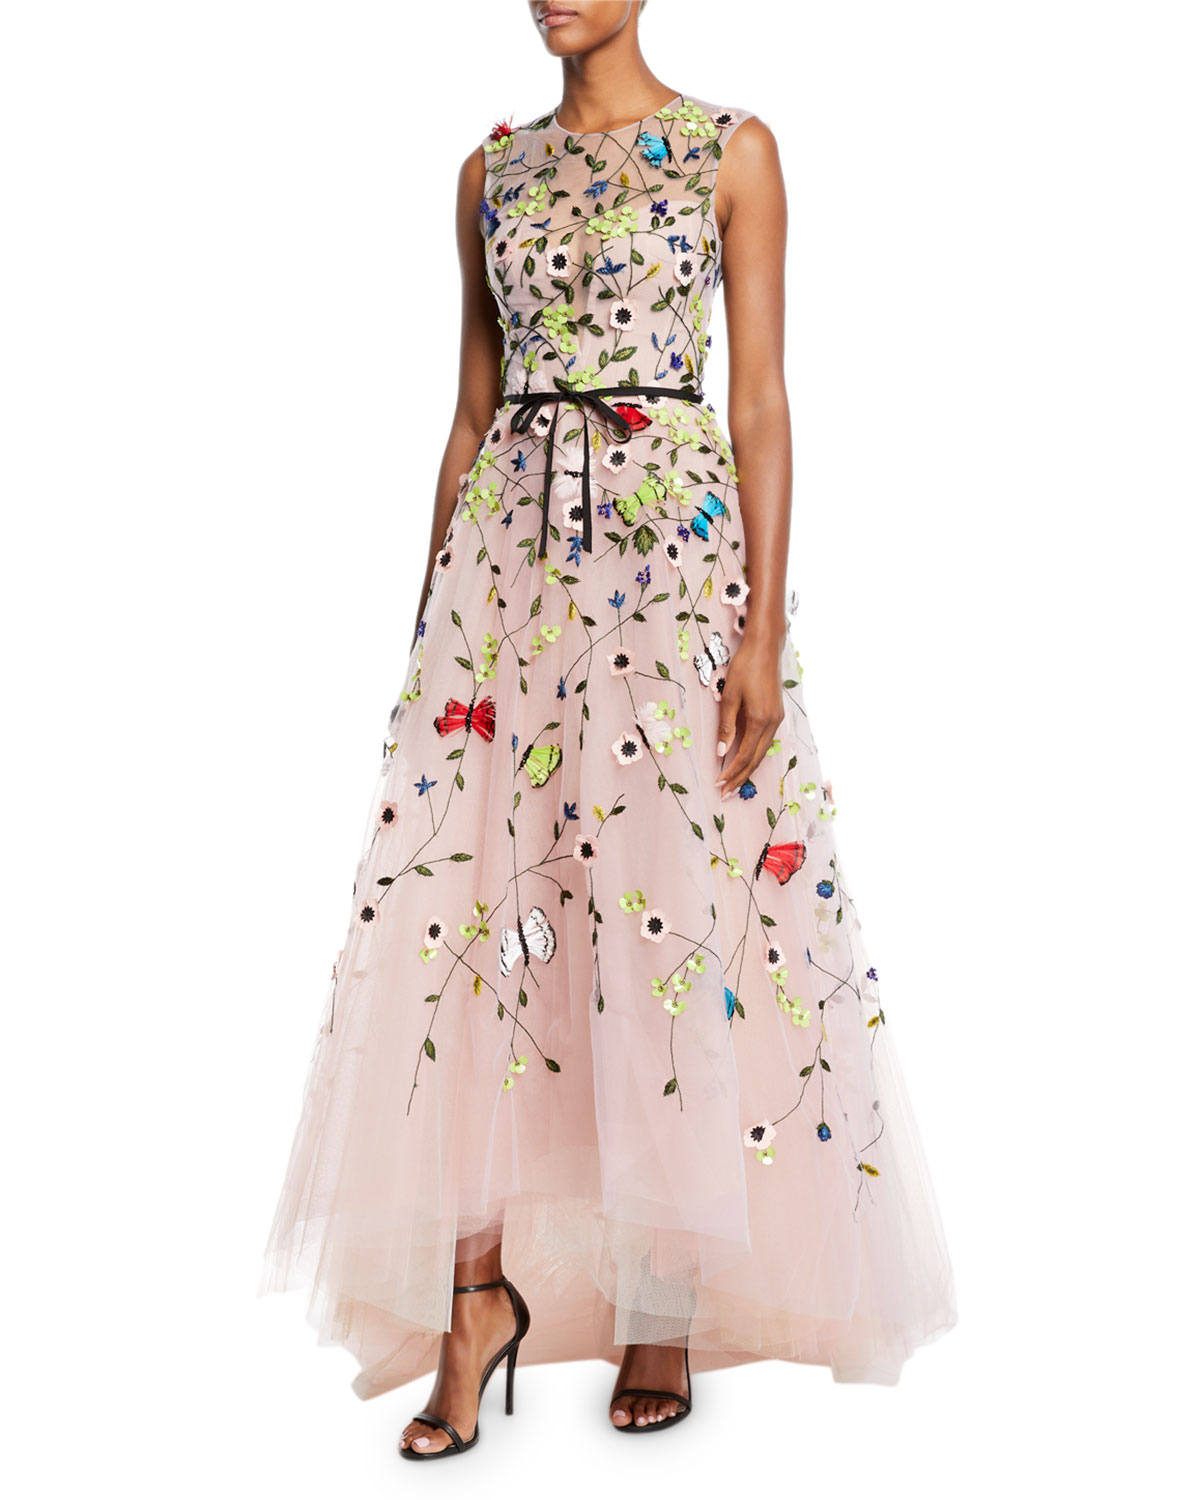 Monique Lhuillier Jewel Neck Sleeveless Floral Embroidered Tulle A